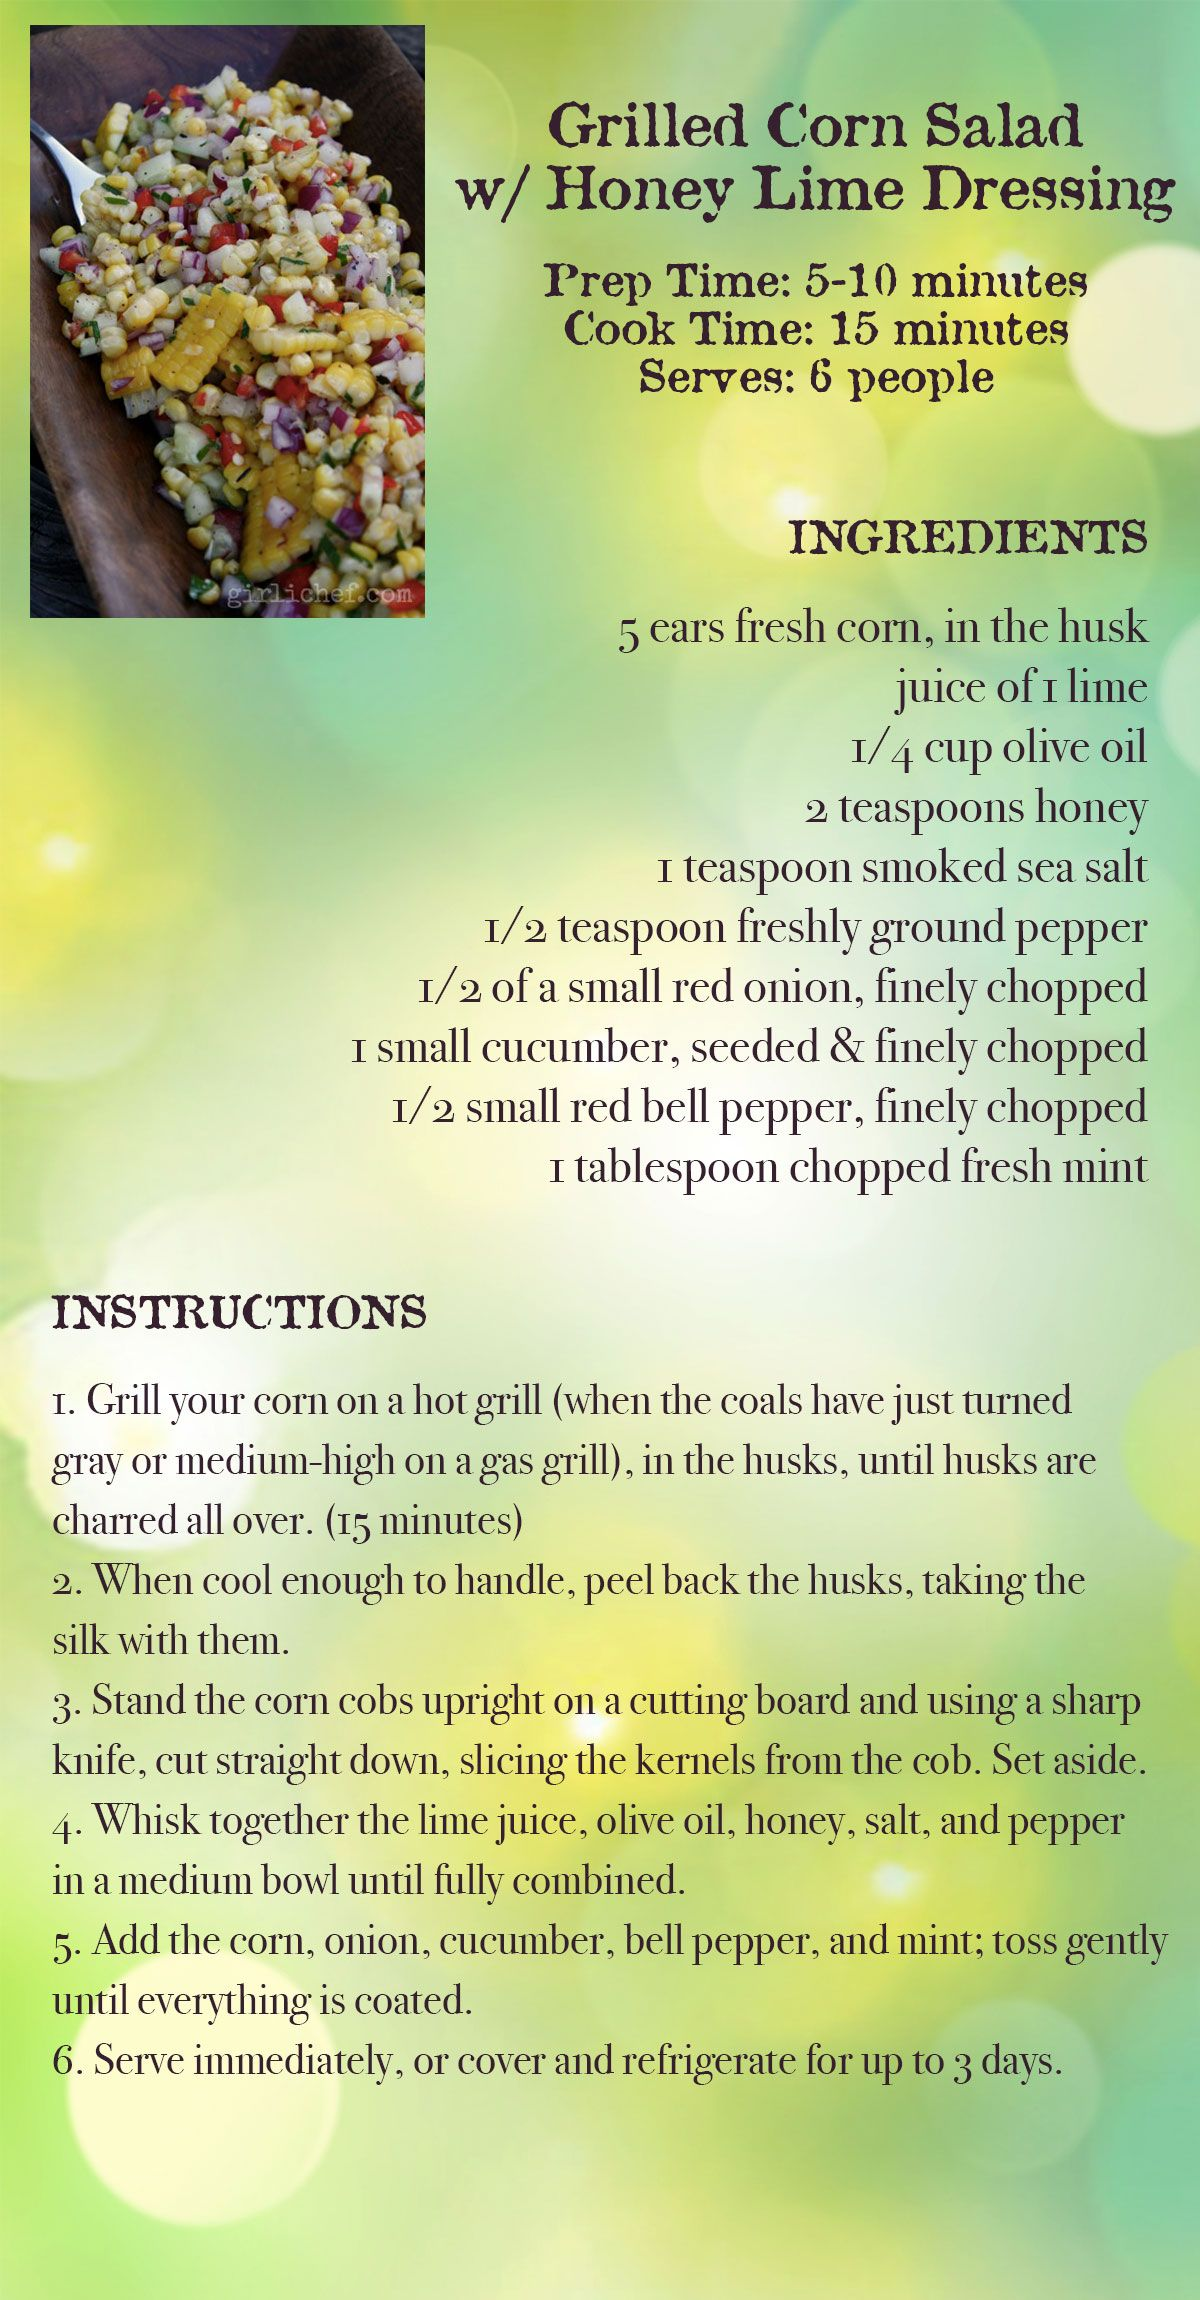 Grilled Corn Salad Recipe Card